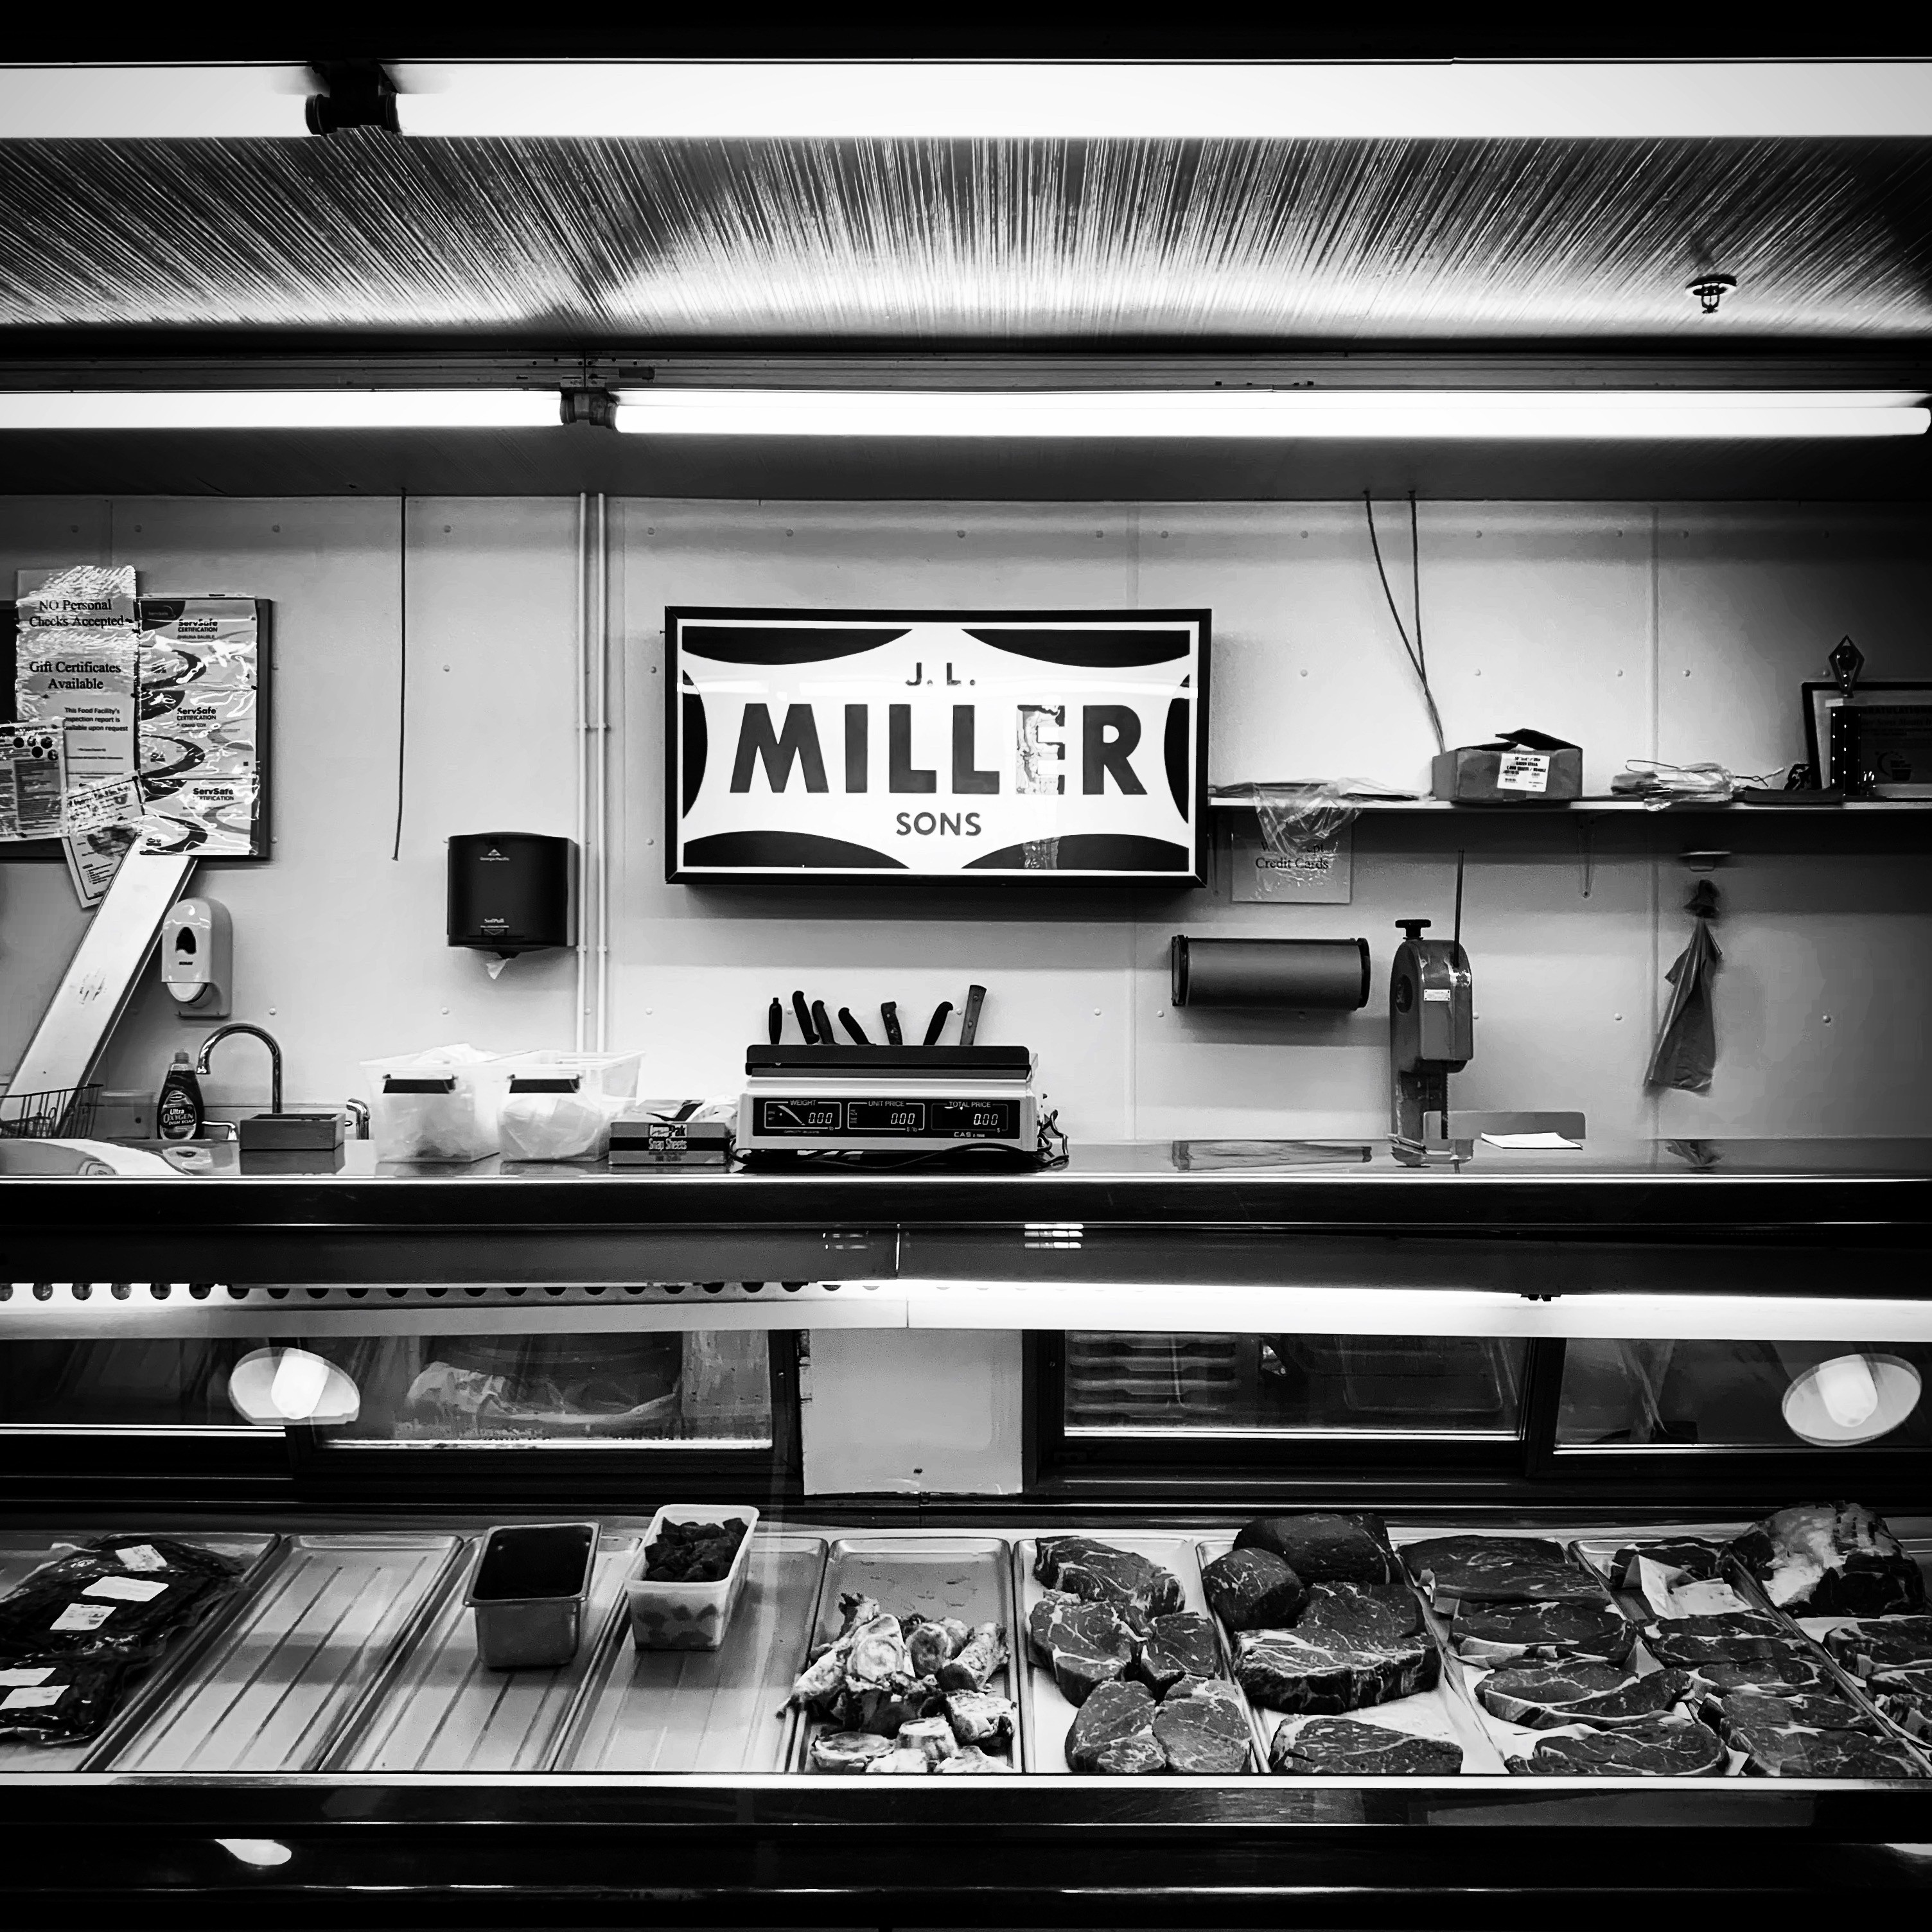 A meat counter